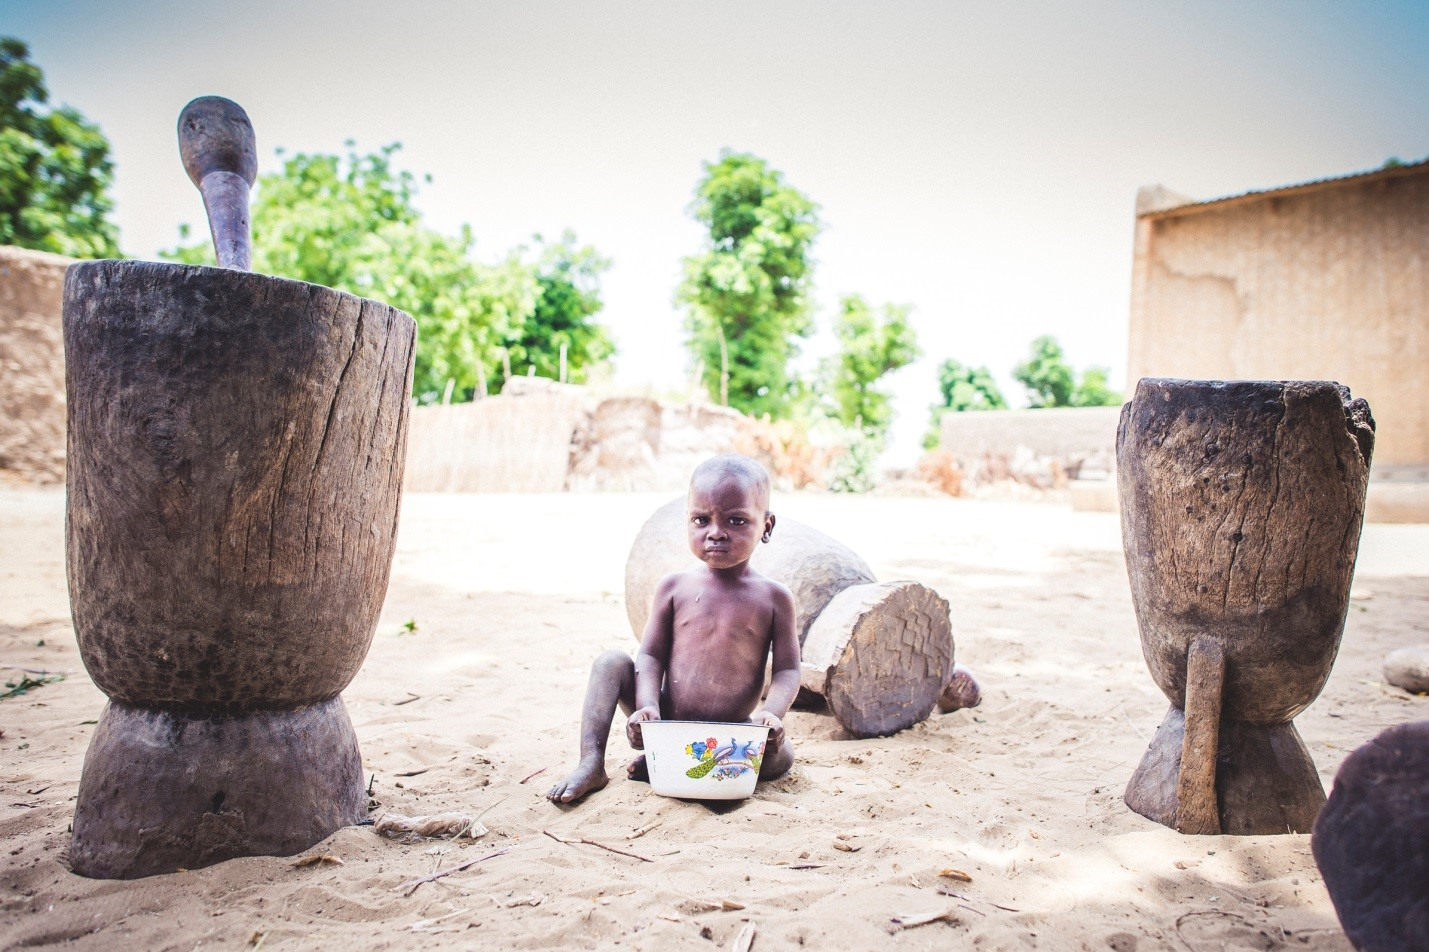 calabash_mortar_and_pestle_with_child